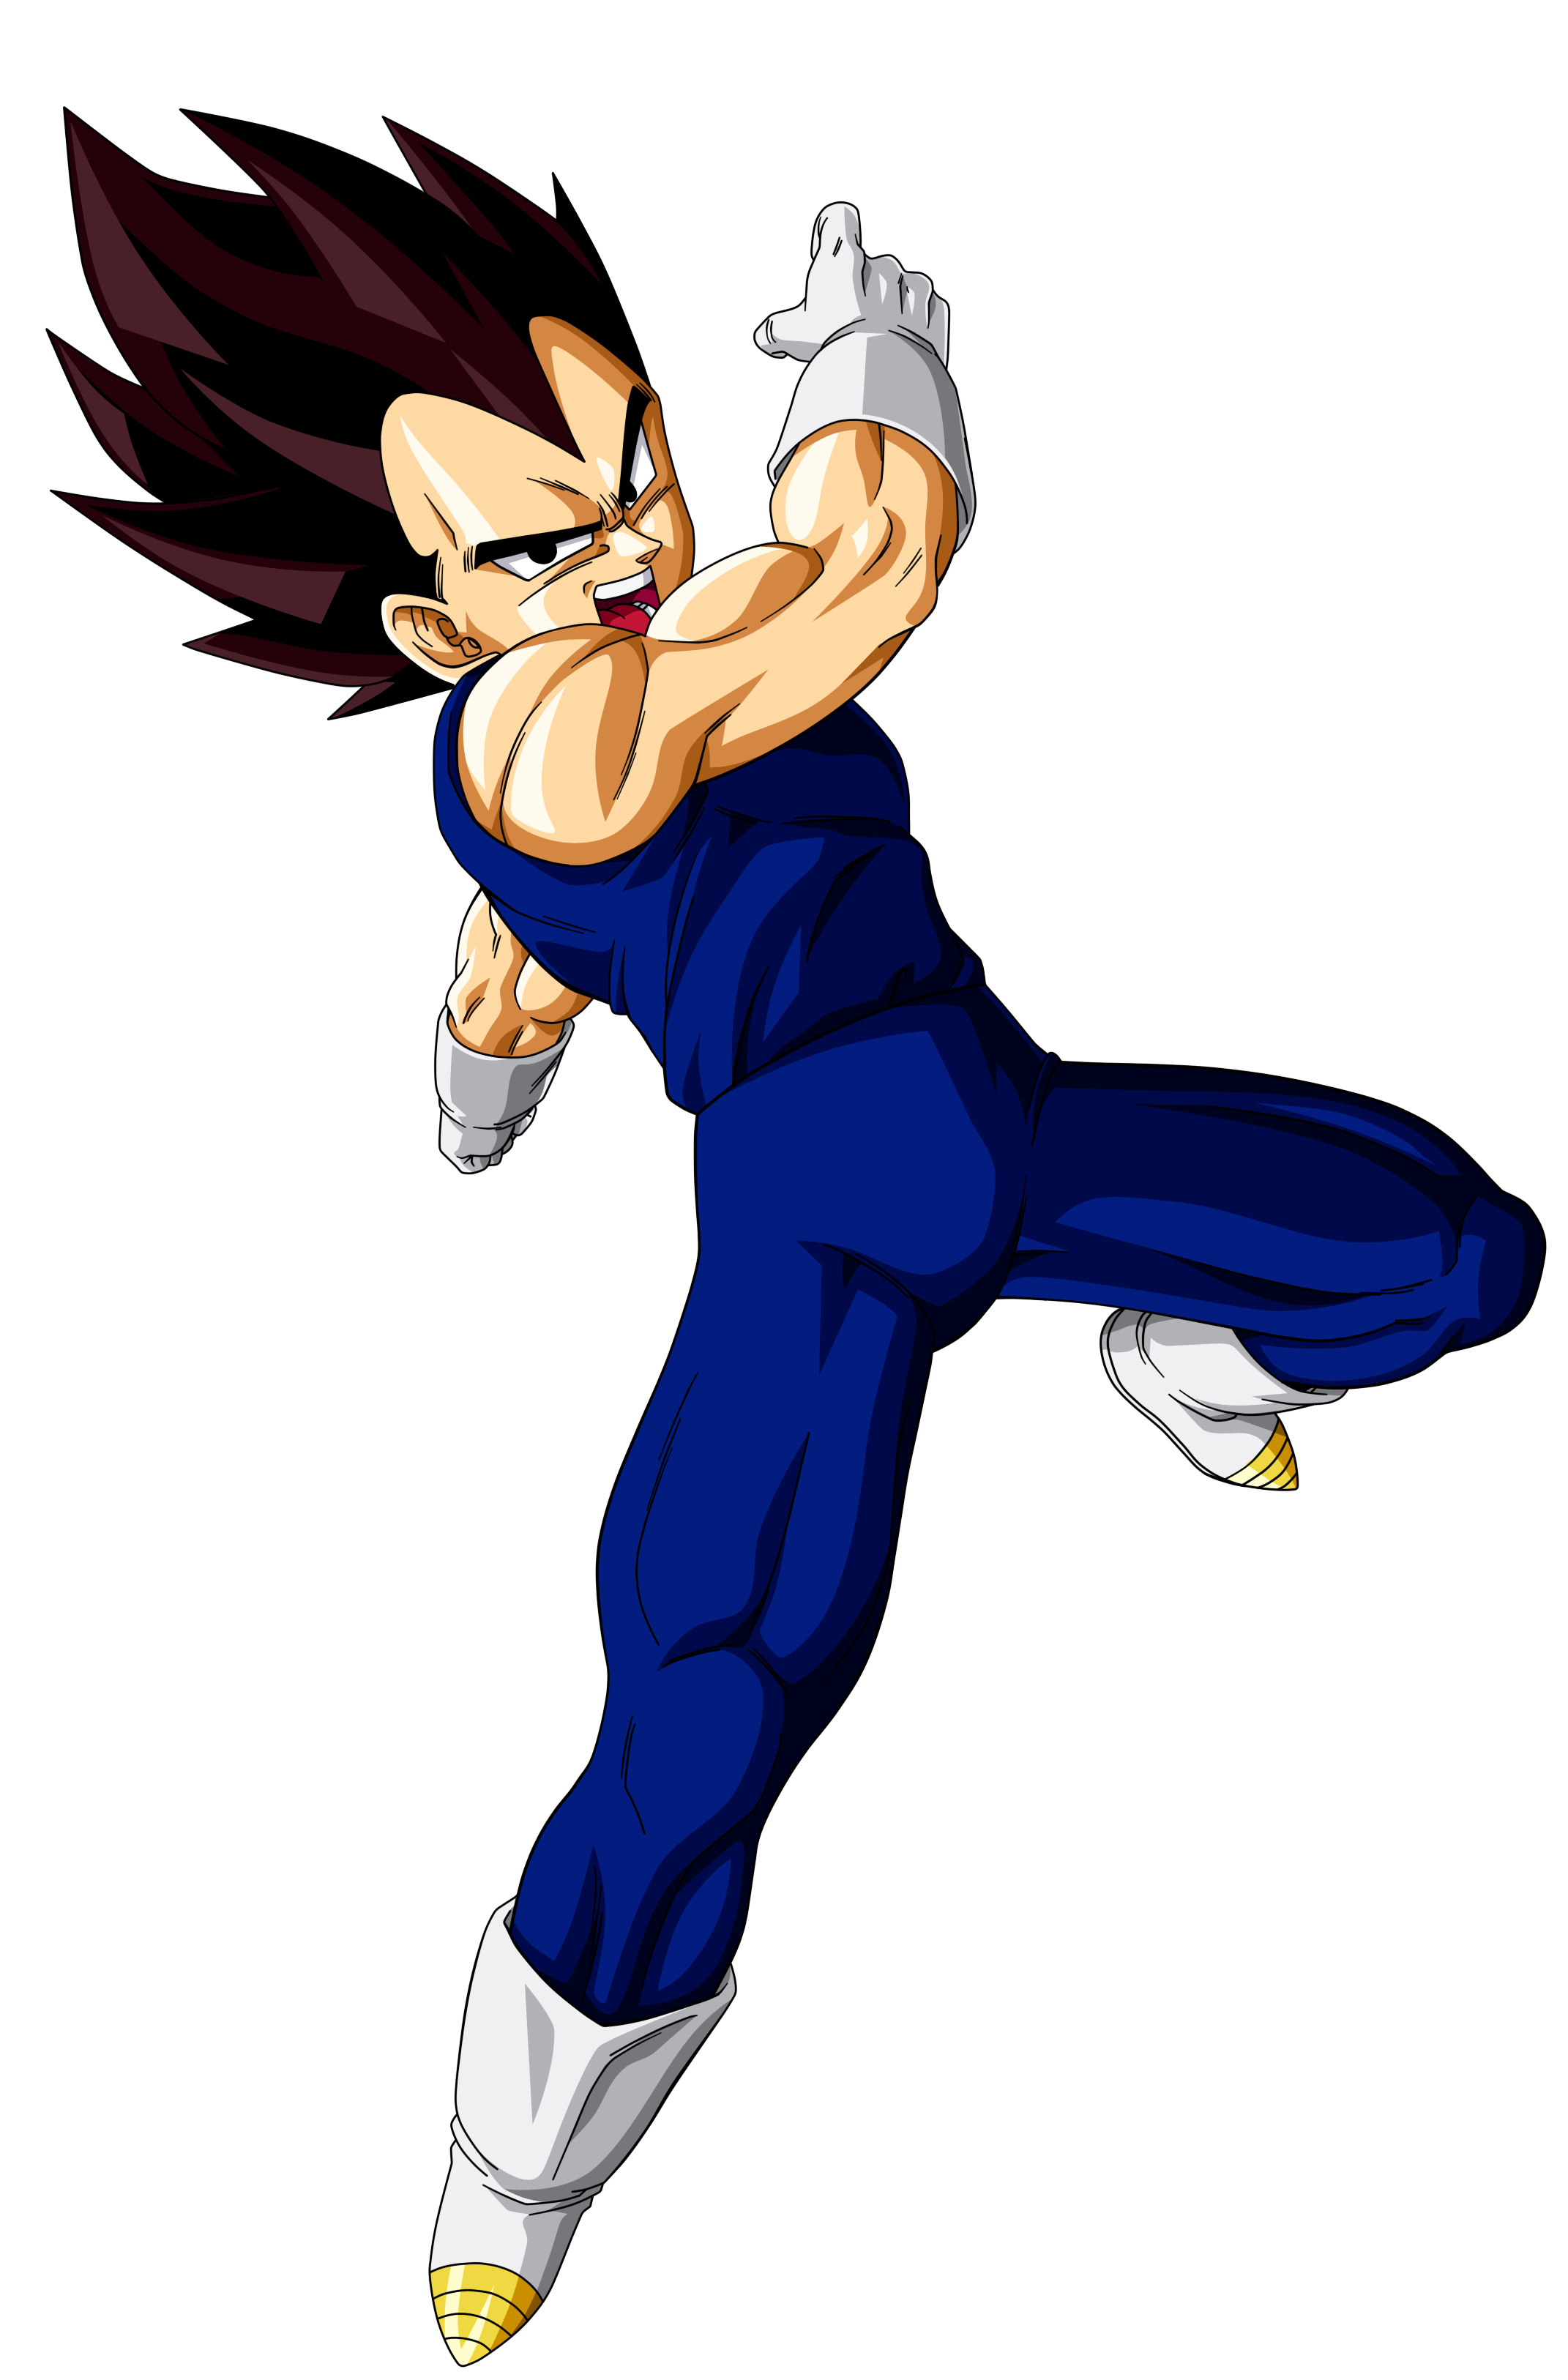 Dbz Vegeta, Anime Comics, Manga Anime, El Anime, Dragon Ball Z, Dragons, Png,  Google Search, Art Styles - Dbz PNG